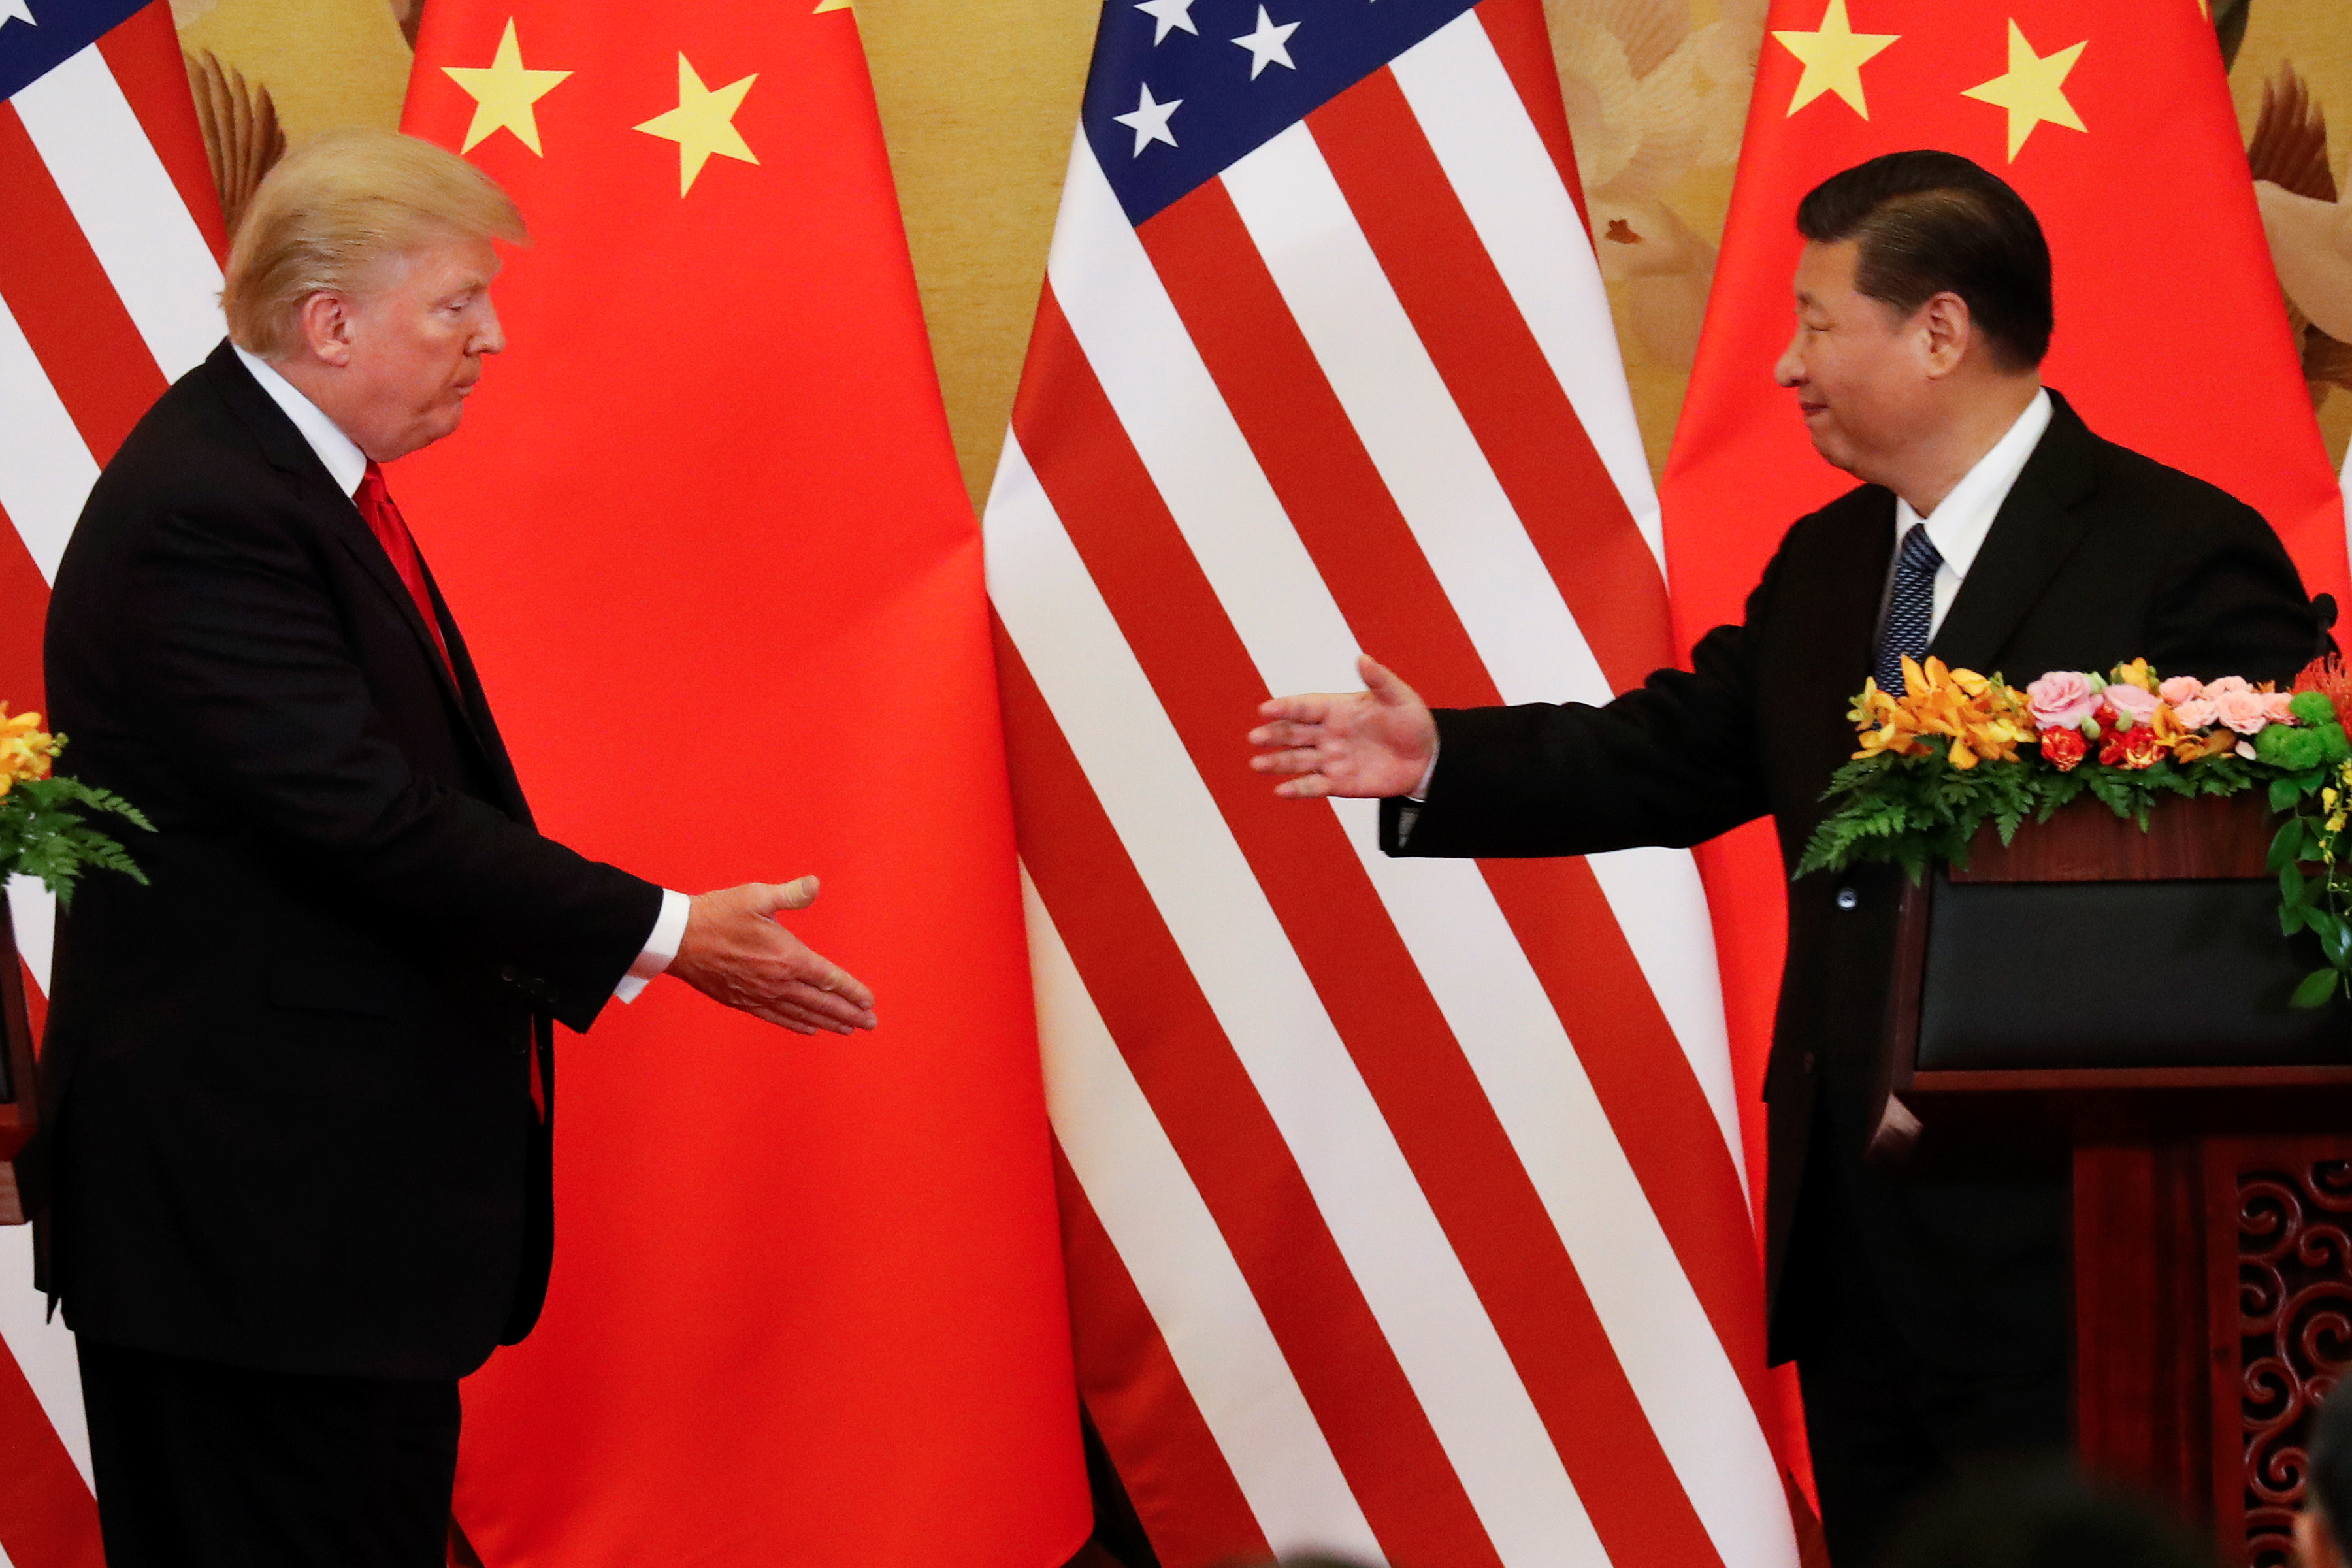 Trump suggests signing new trade deal with China